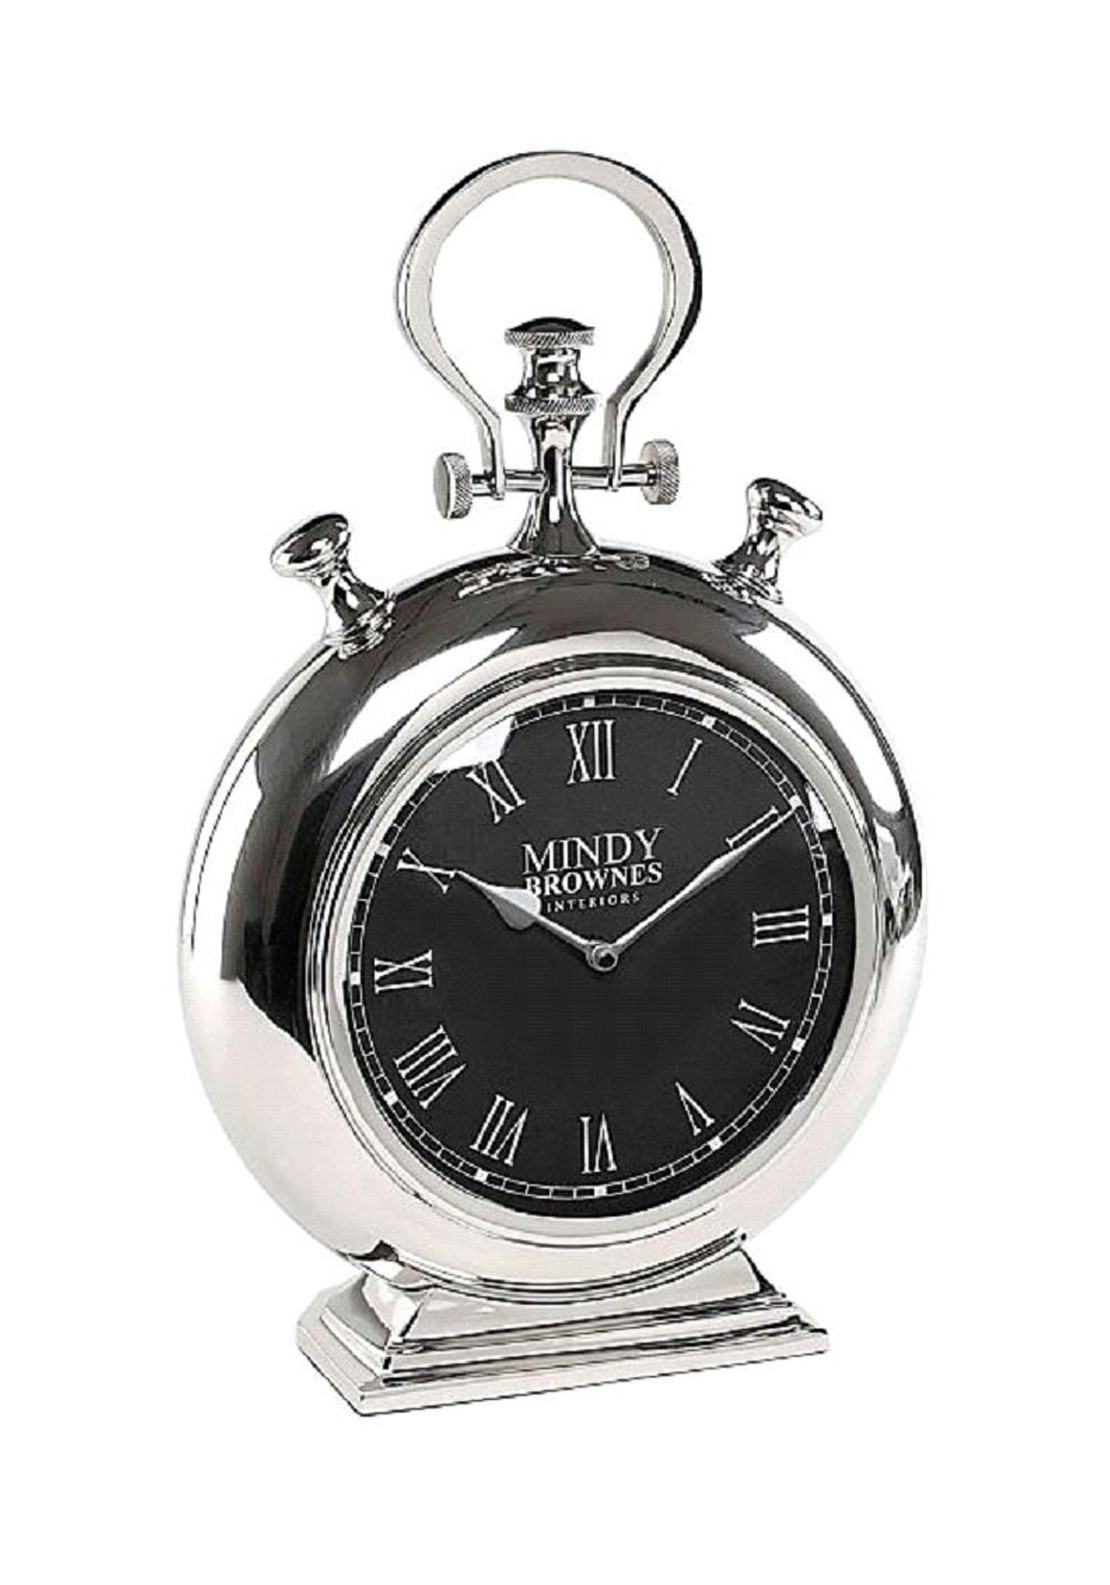 Mindy Brownes Hadrian Table Clock